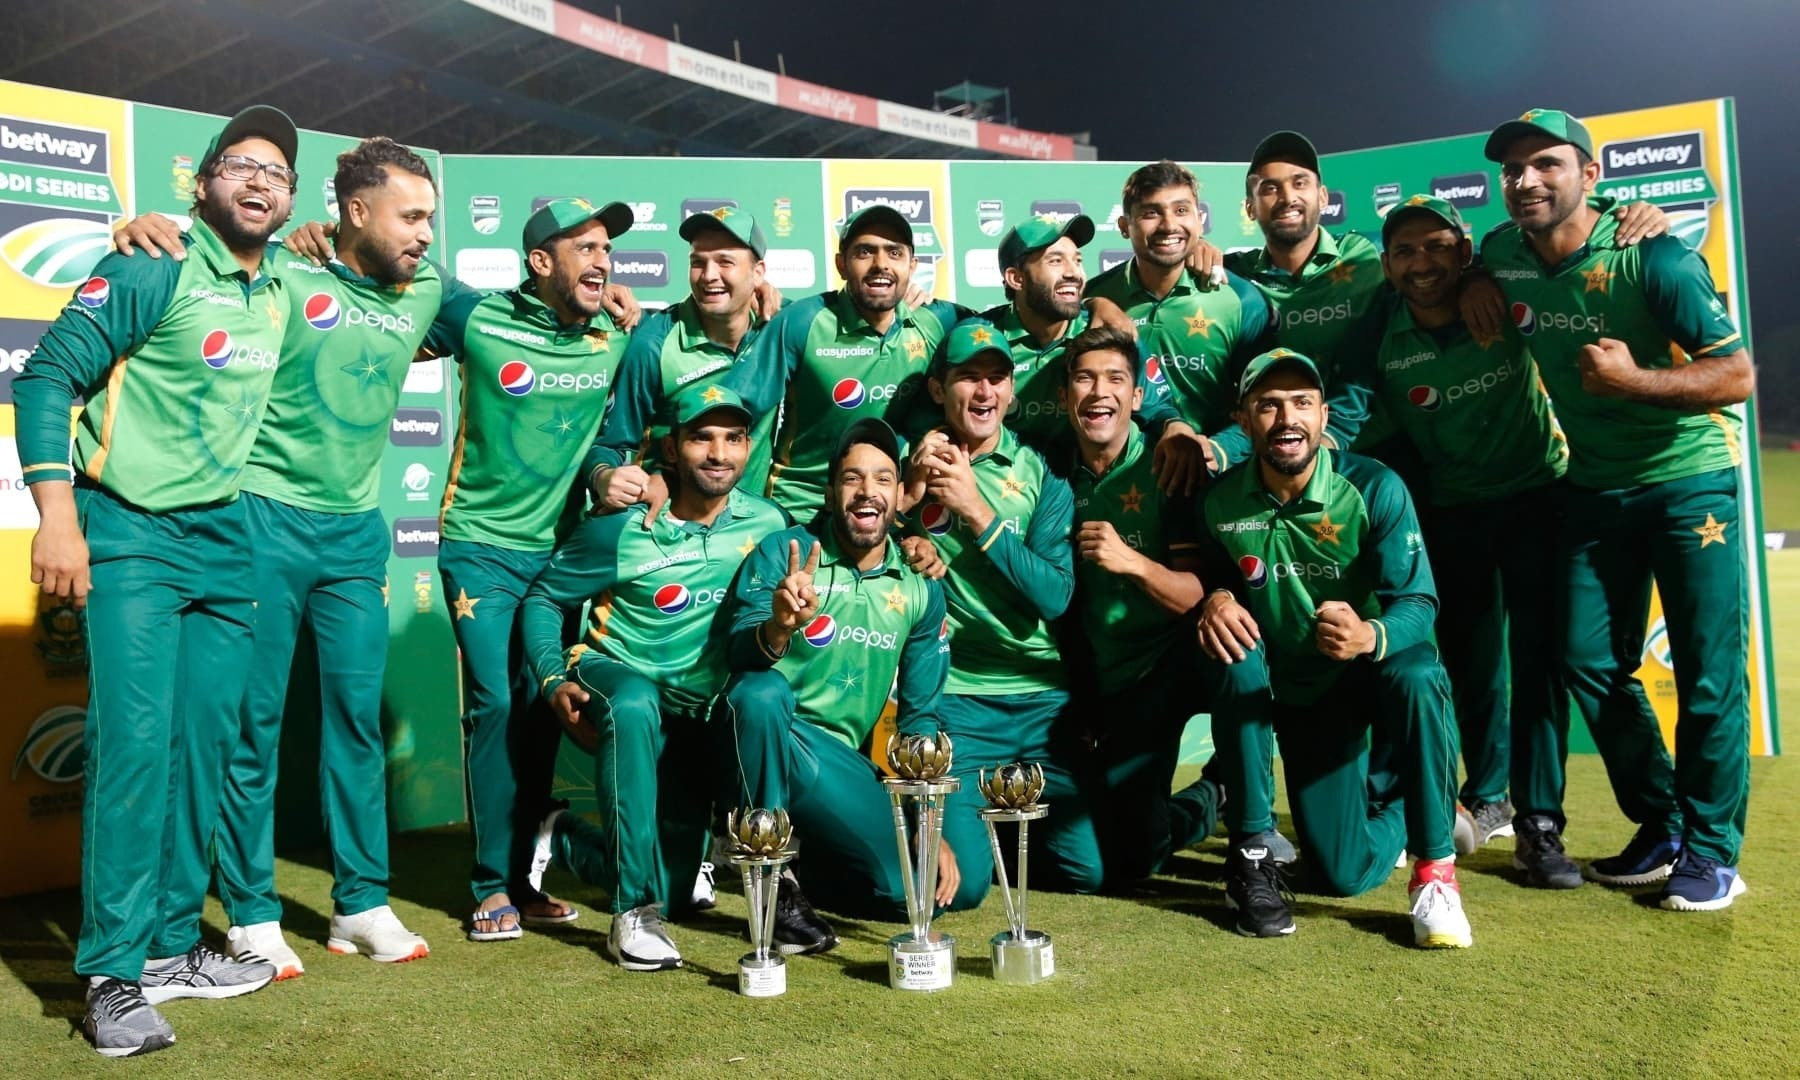 In this file photo, the Pakistan team pose for a photograph after winning the series after the third one-day international (ODI) match between South Africa and Pakistan at SuperSport Park in Centurion on April 7. — AFP/File